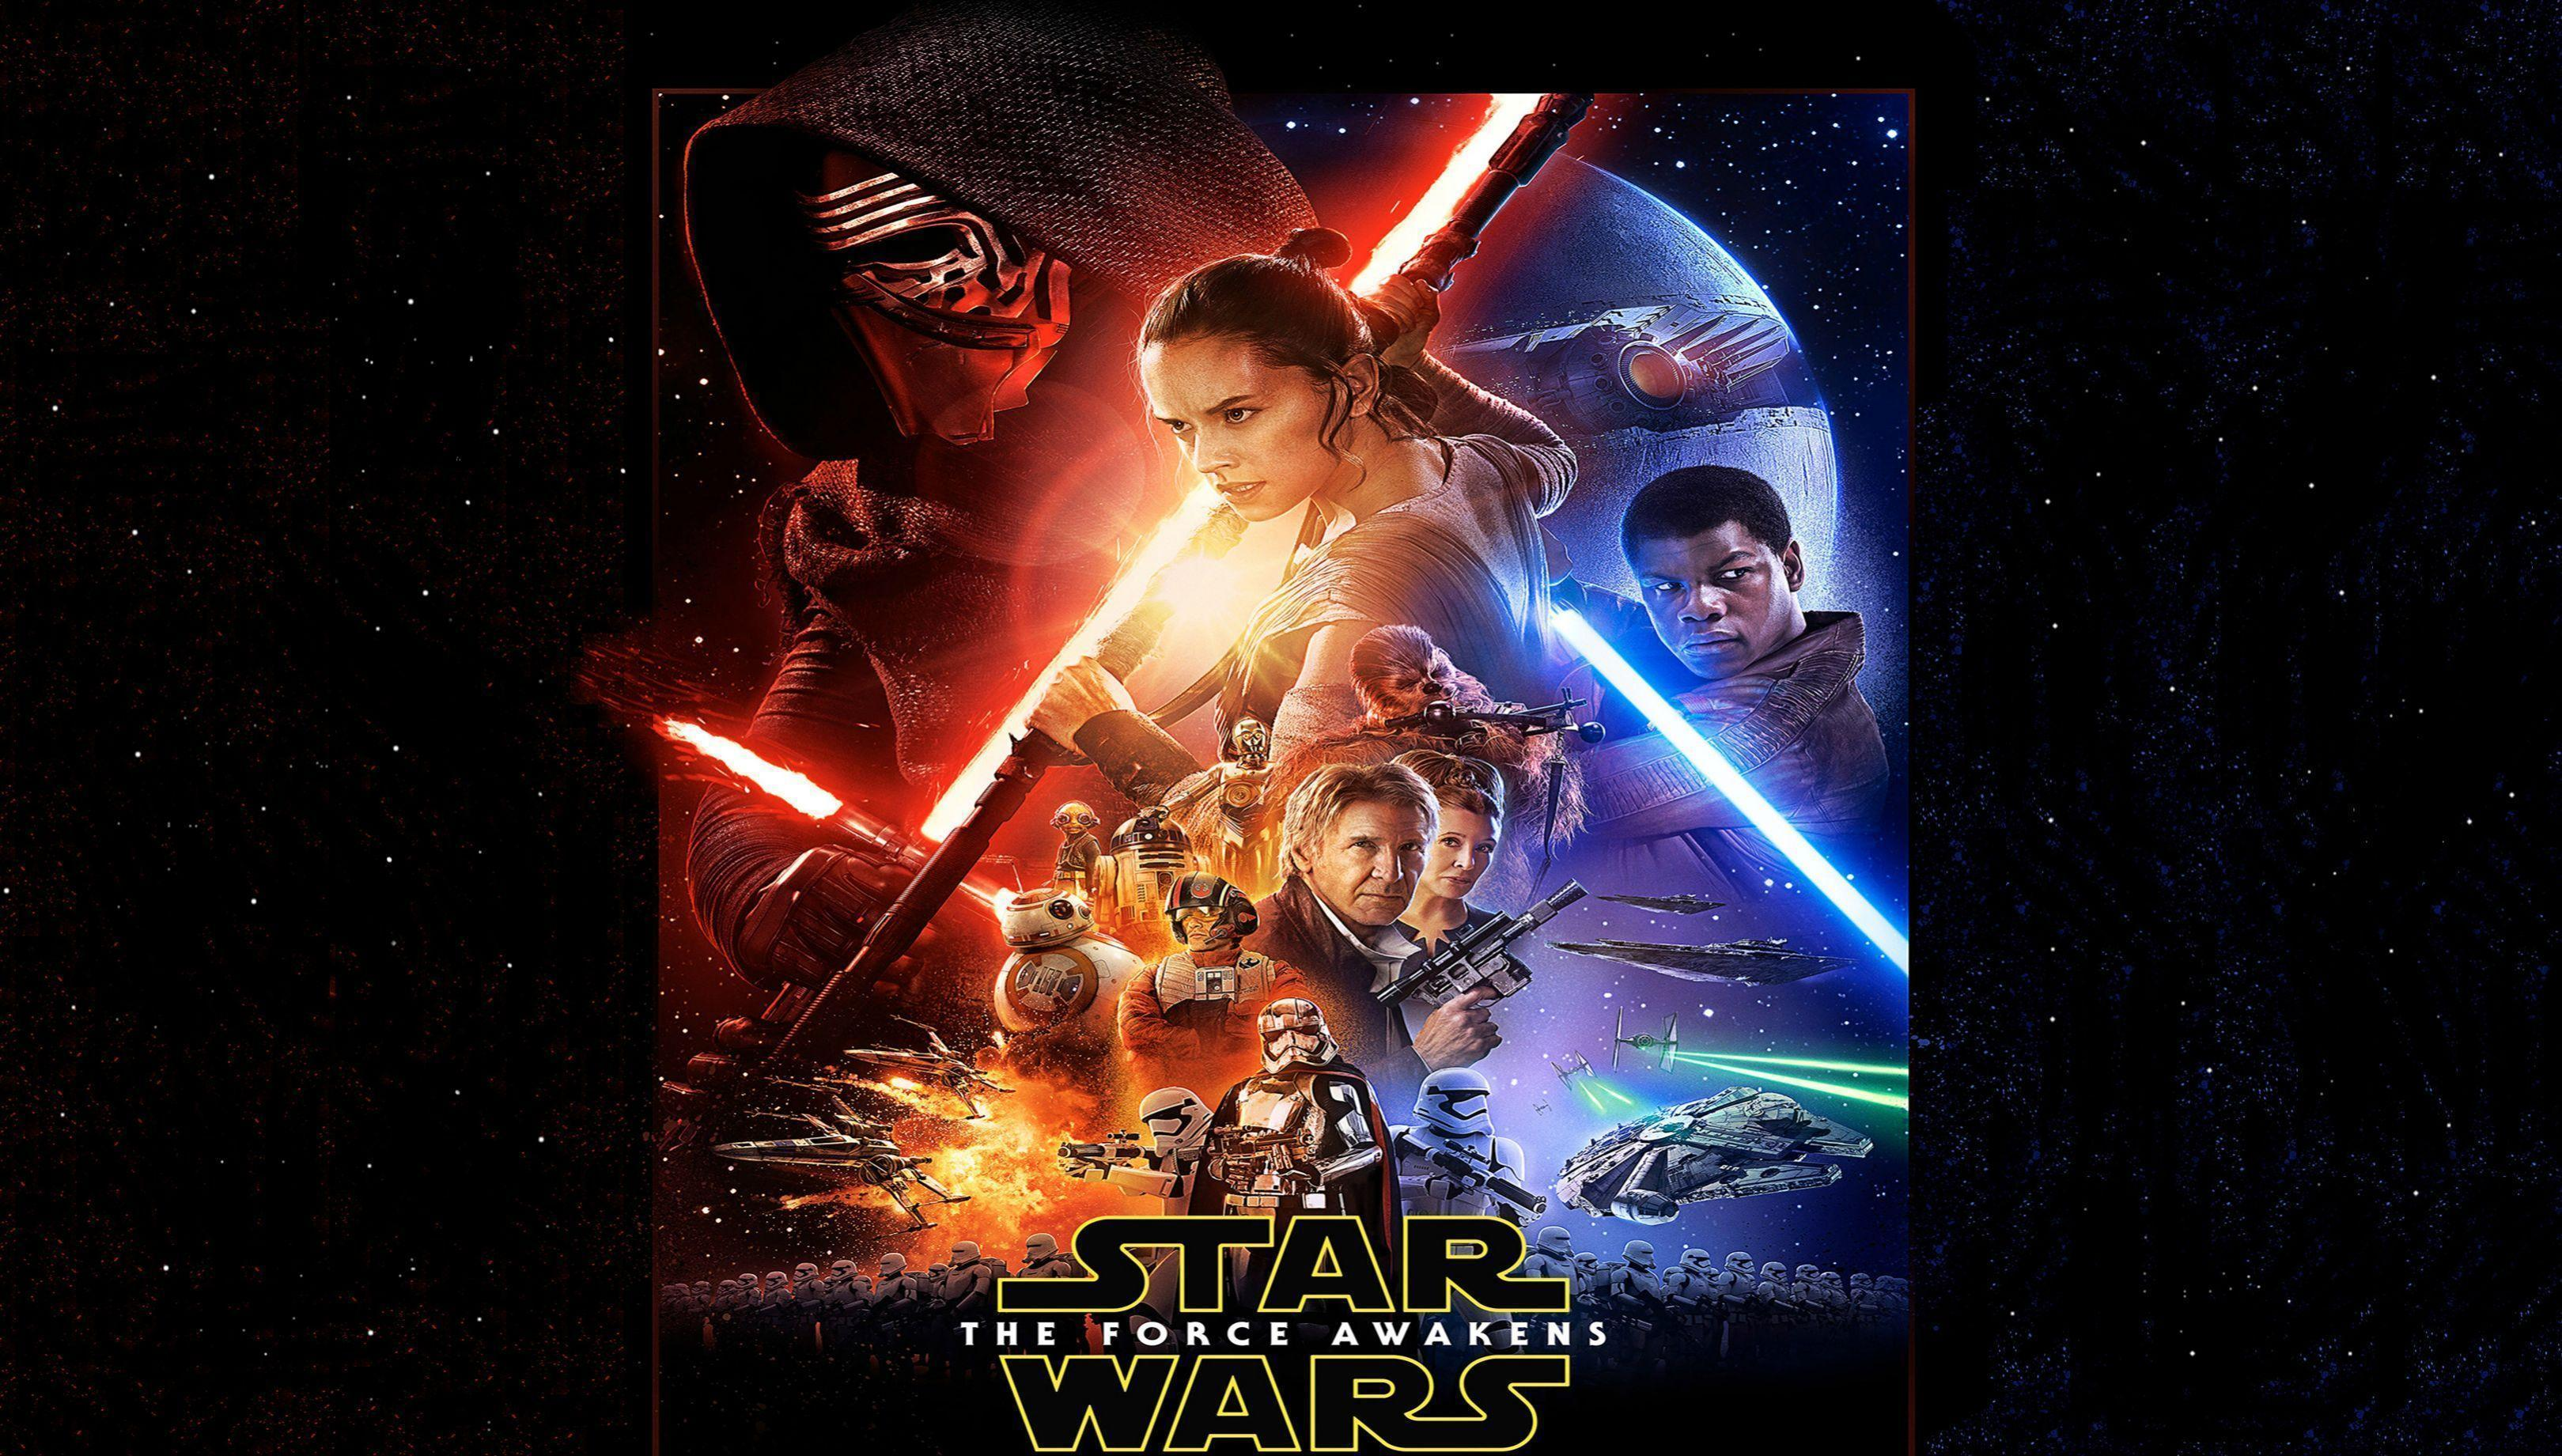 Star wars the force awakens wallpapers wallpaper cave - Star wars the force awakens desktop wallpaper ...